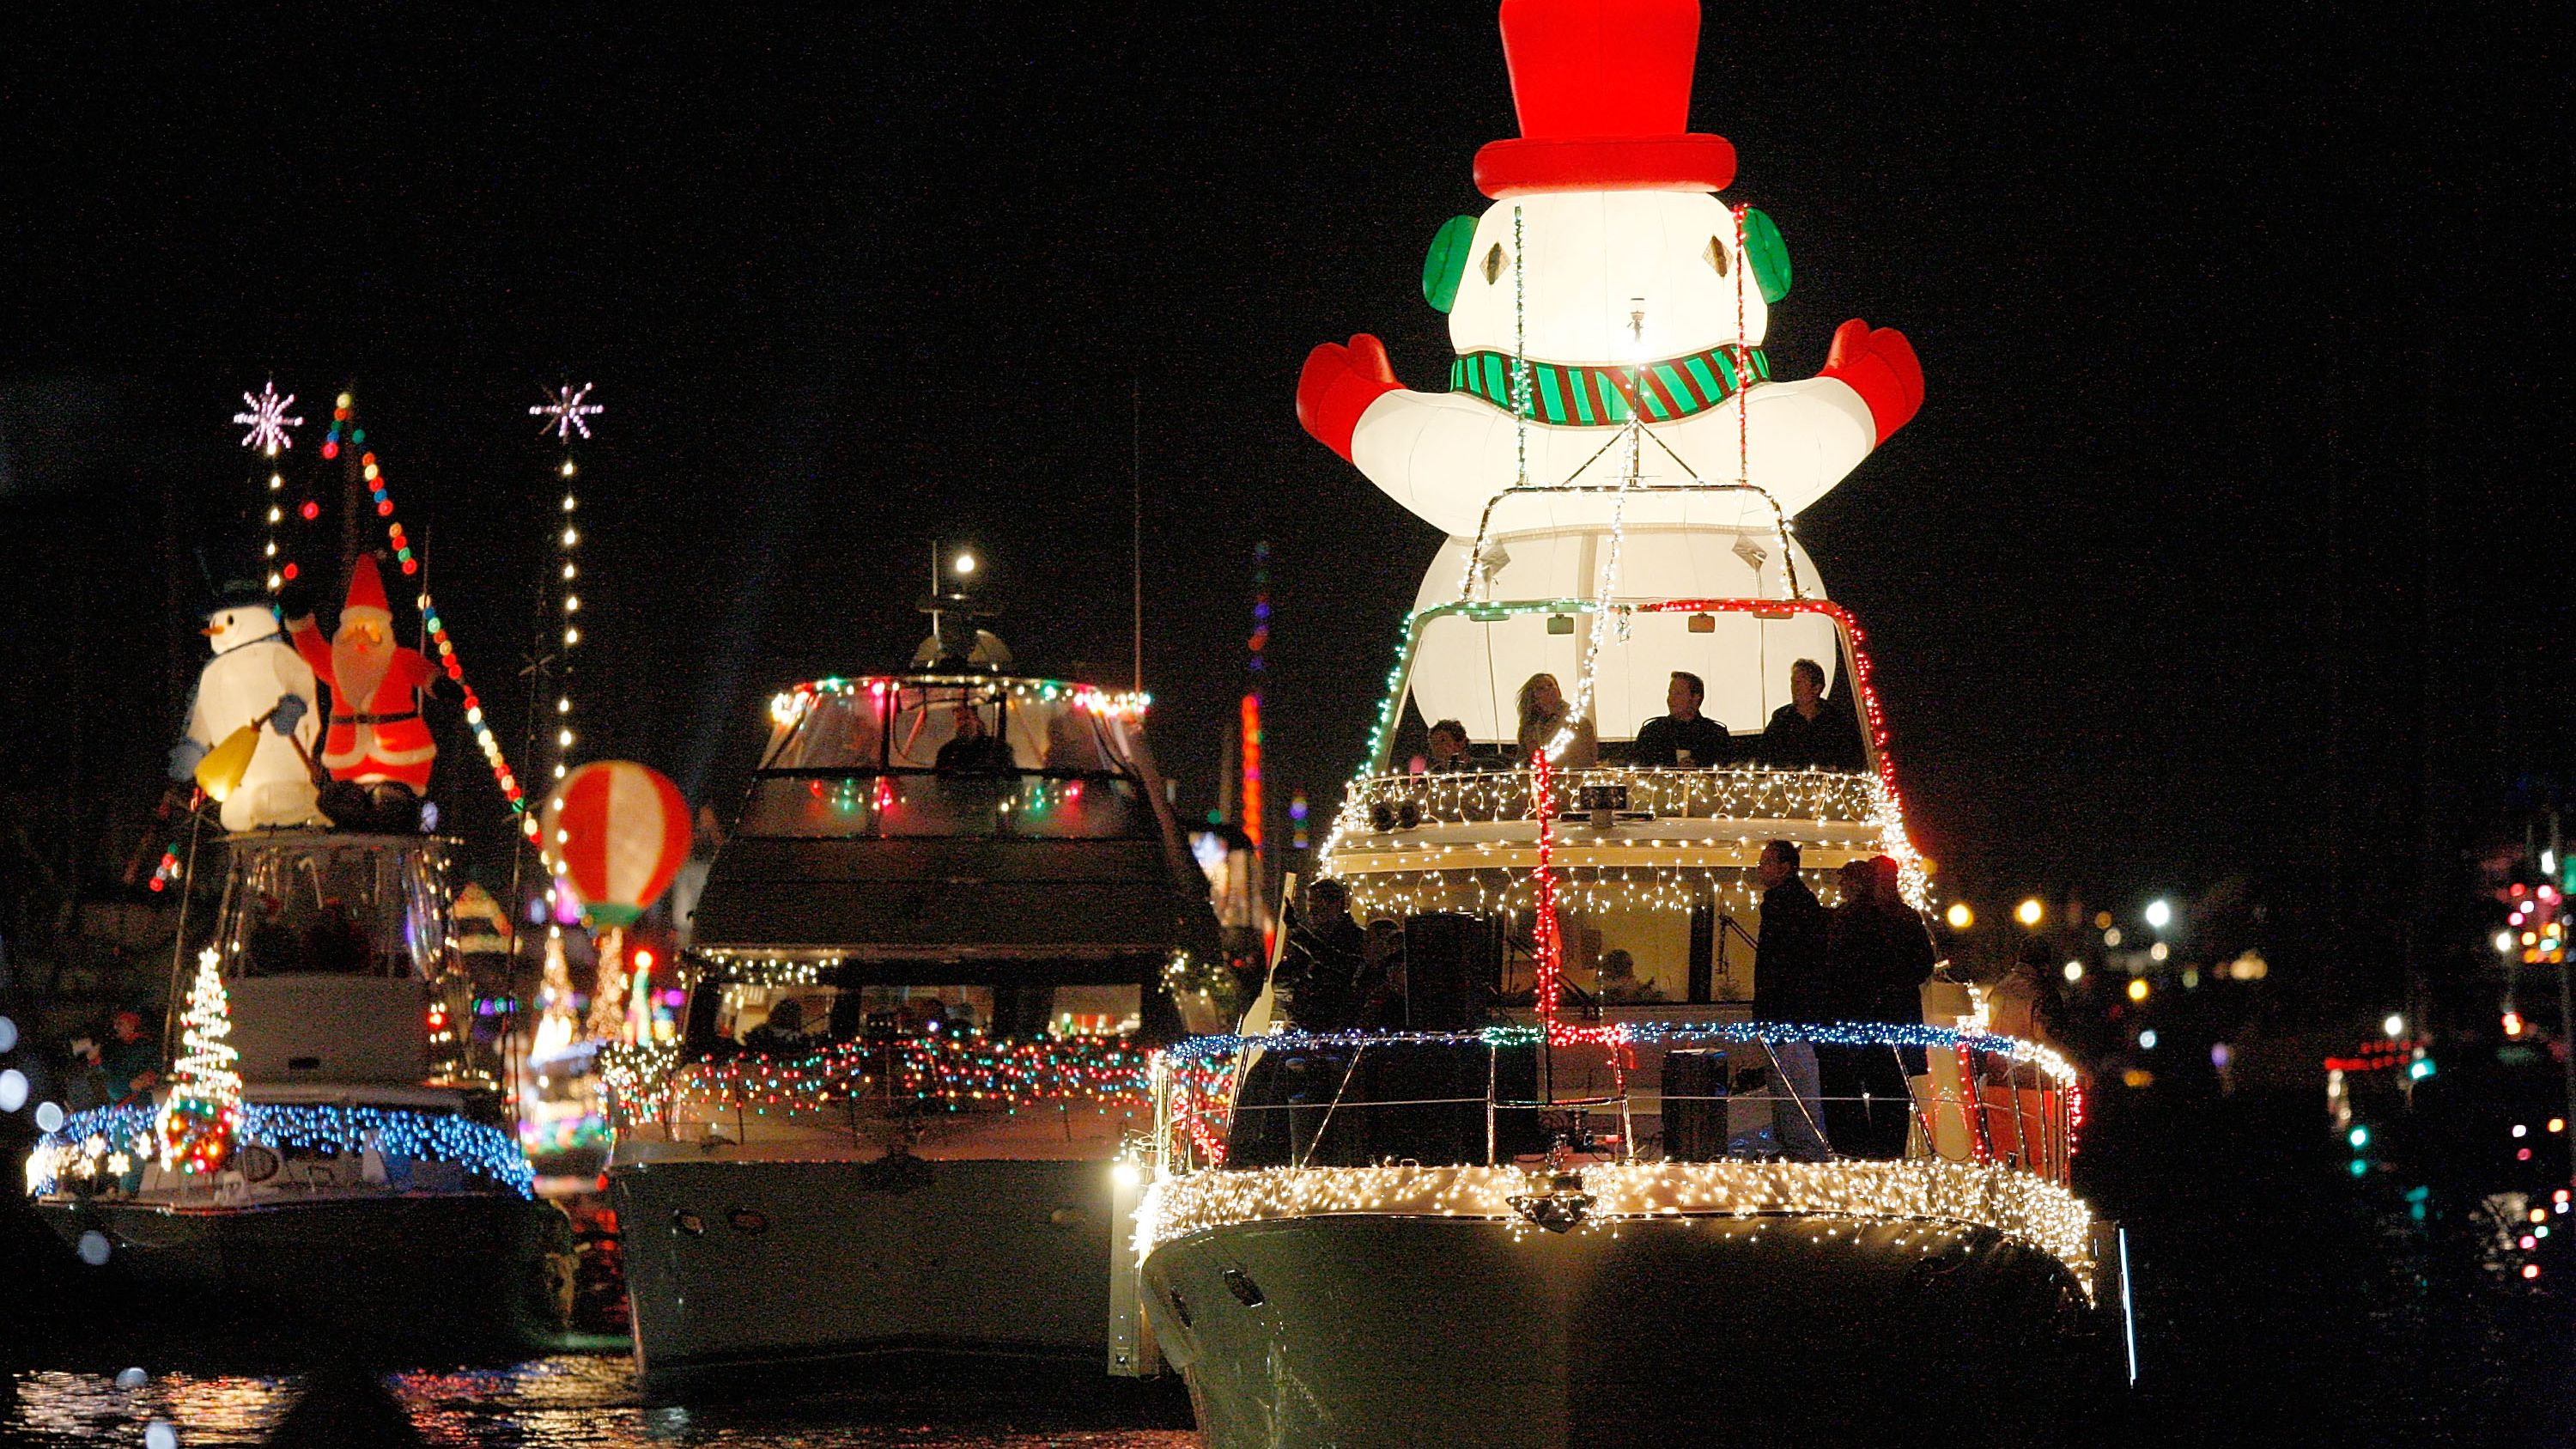 Newport Beach Christmas Lights Cruise.Newport Beach Christmas Boat Parade The Complete Guide